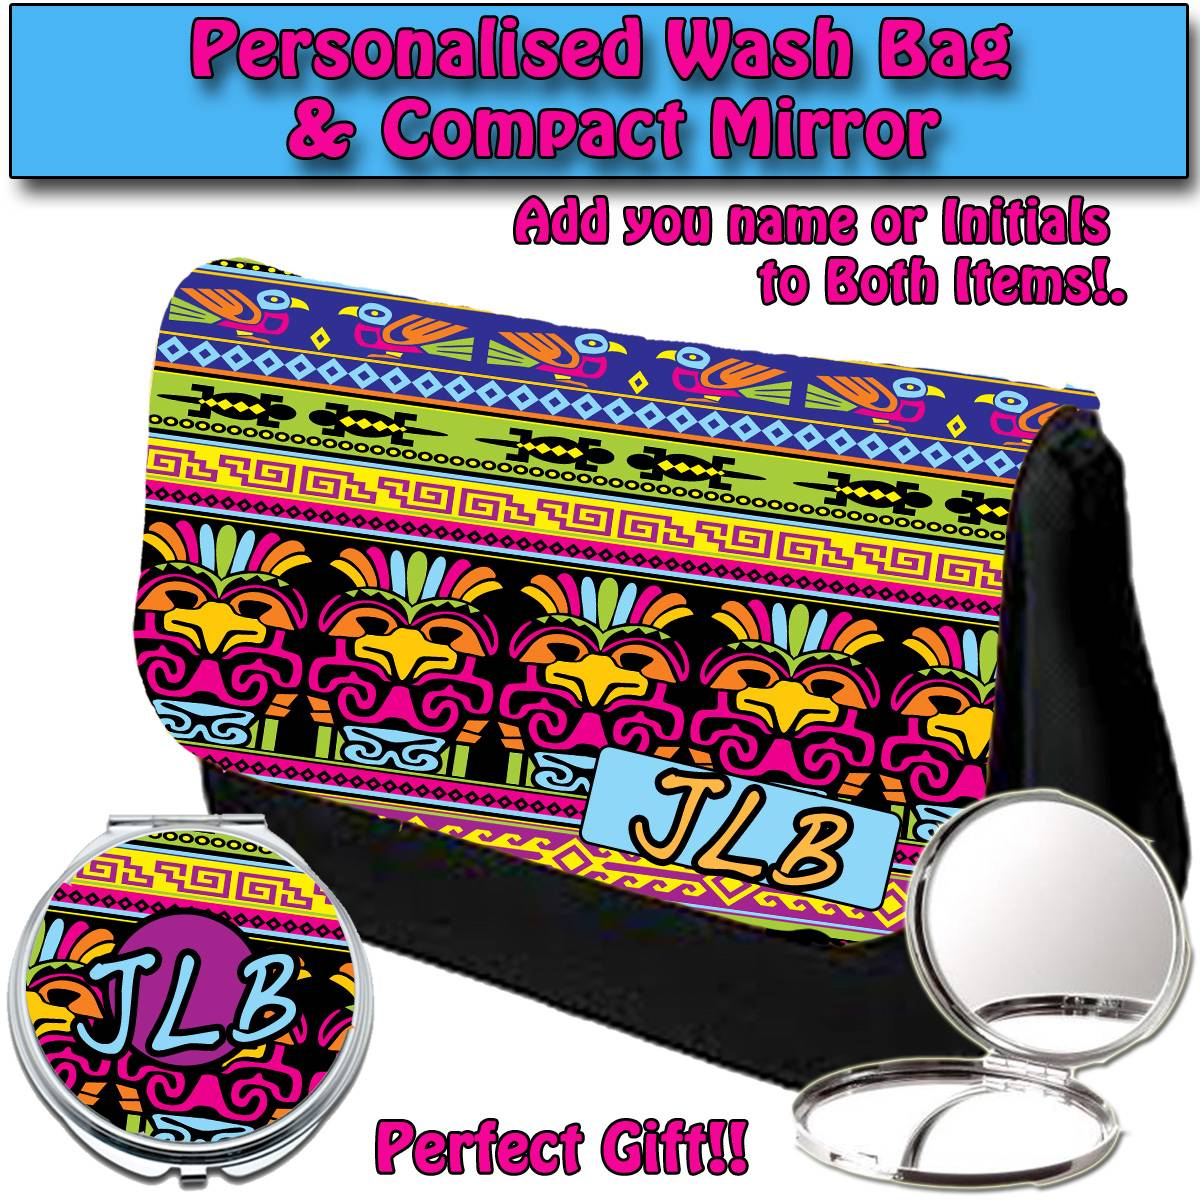 PERSONALISED-WOMENS-AZTEC-1-MAKE-UP-BAG-COMPACT-MIRROR-LADIES-GIFT-032